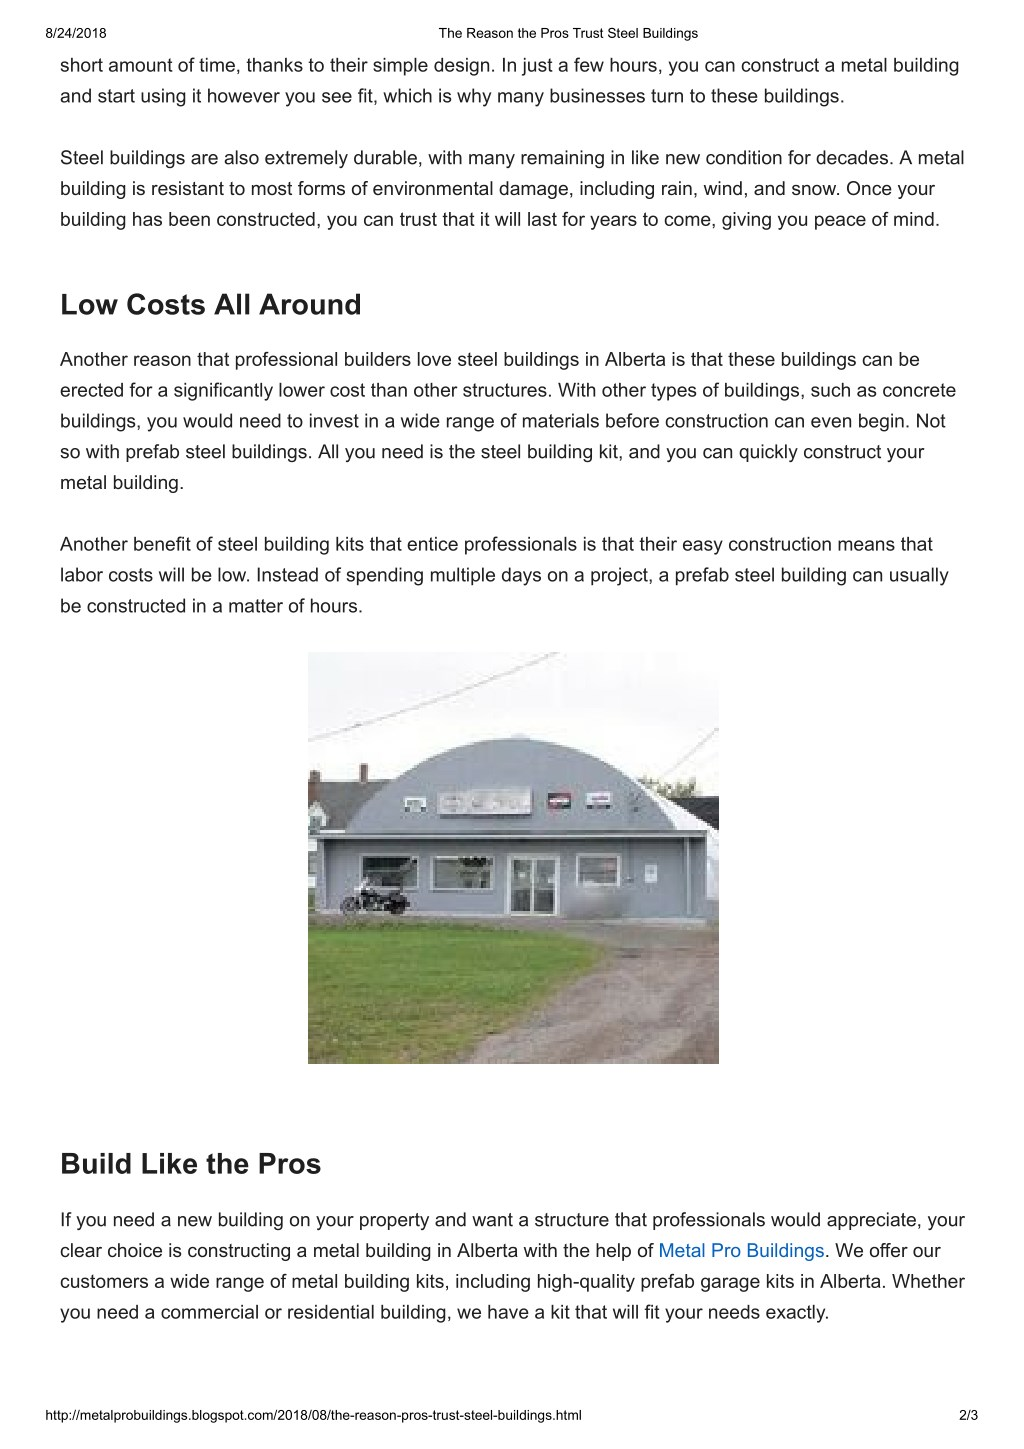 PPT - The Reason the Pros Trust Steel Buildings PowerPoint